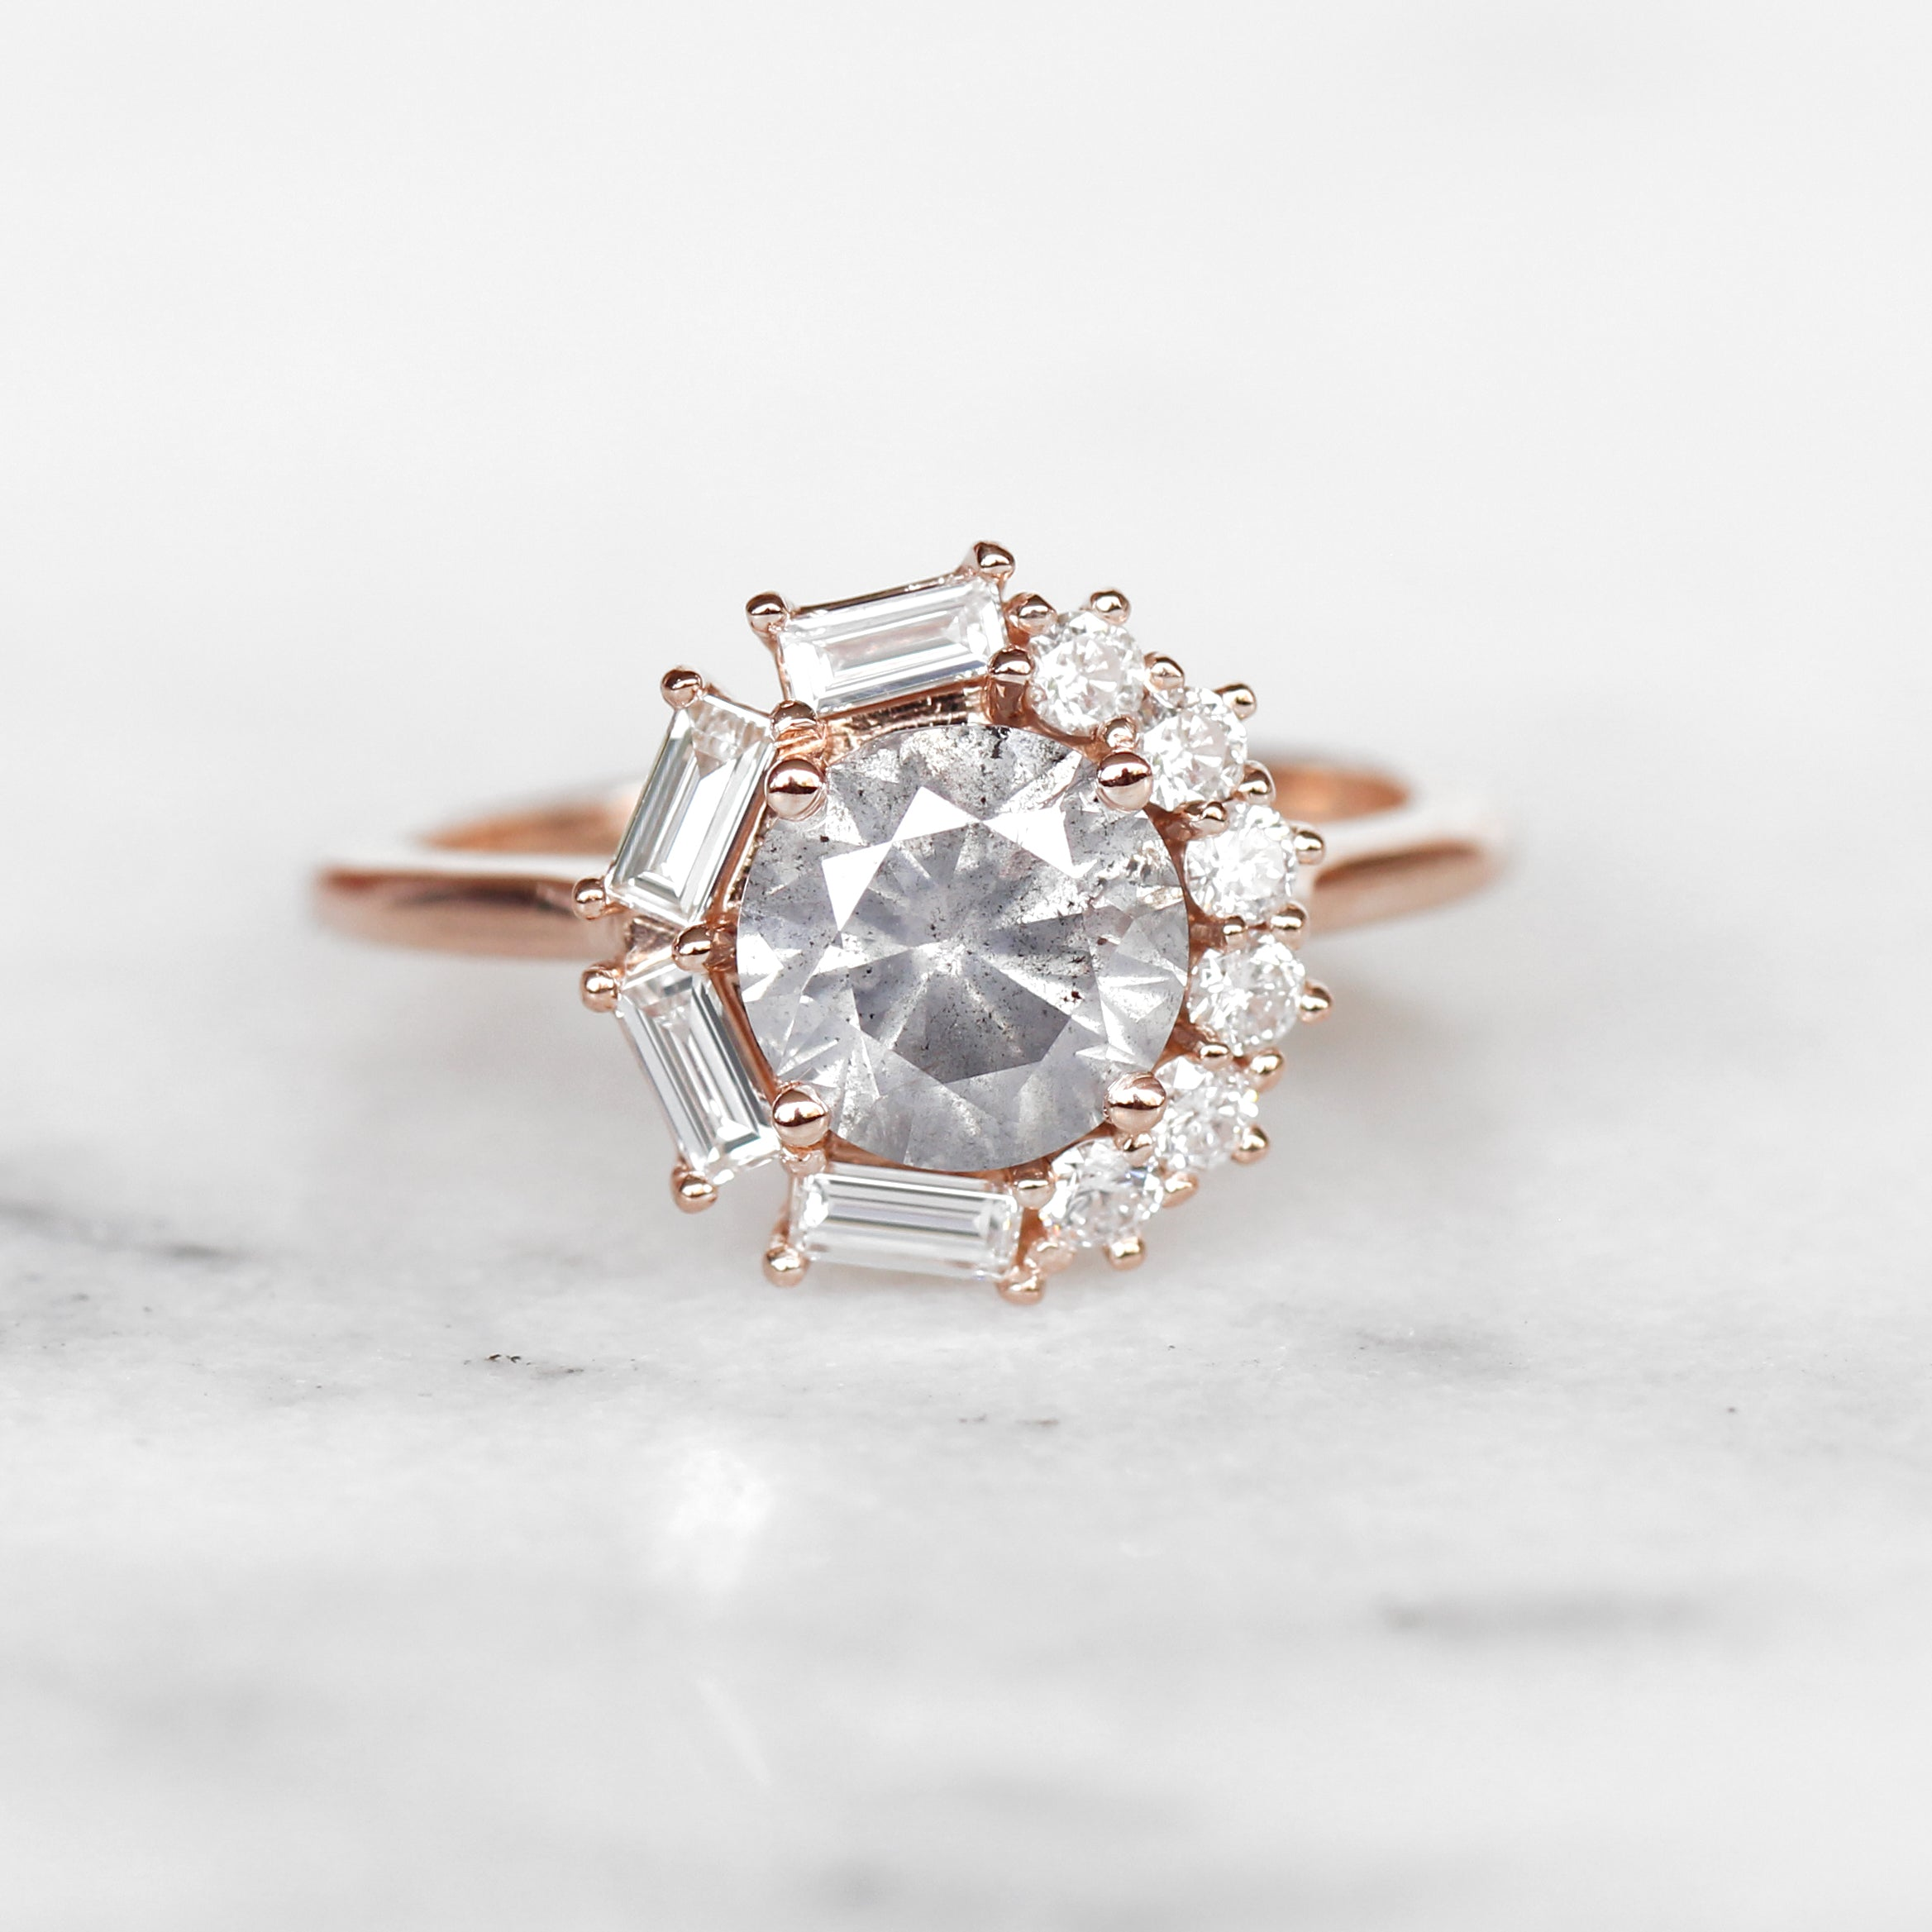 Collins ring with 1.40 carat brilliant round celestial diamond in 14k rose gold - ready to size and ship - Salt & Pepper Celestial Diamond Engagement Rings and Wedding Bands  by Midwinter Co.